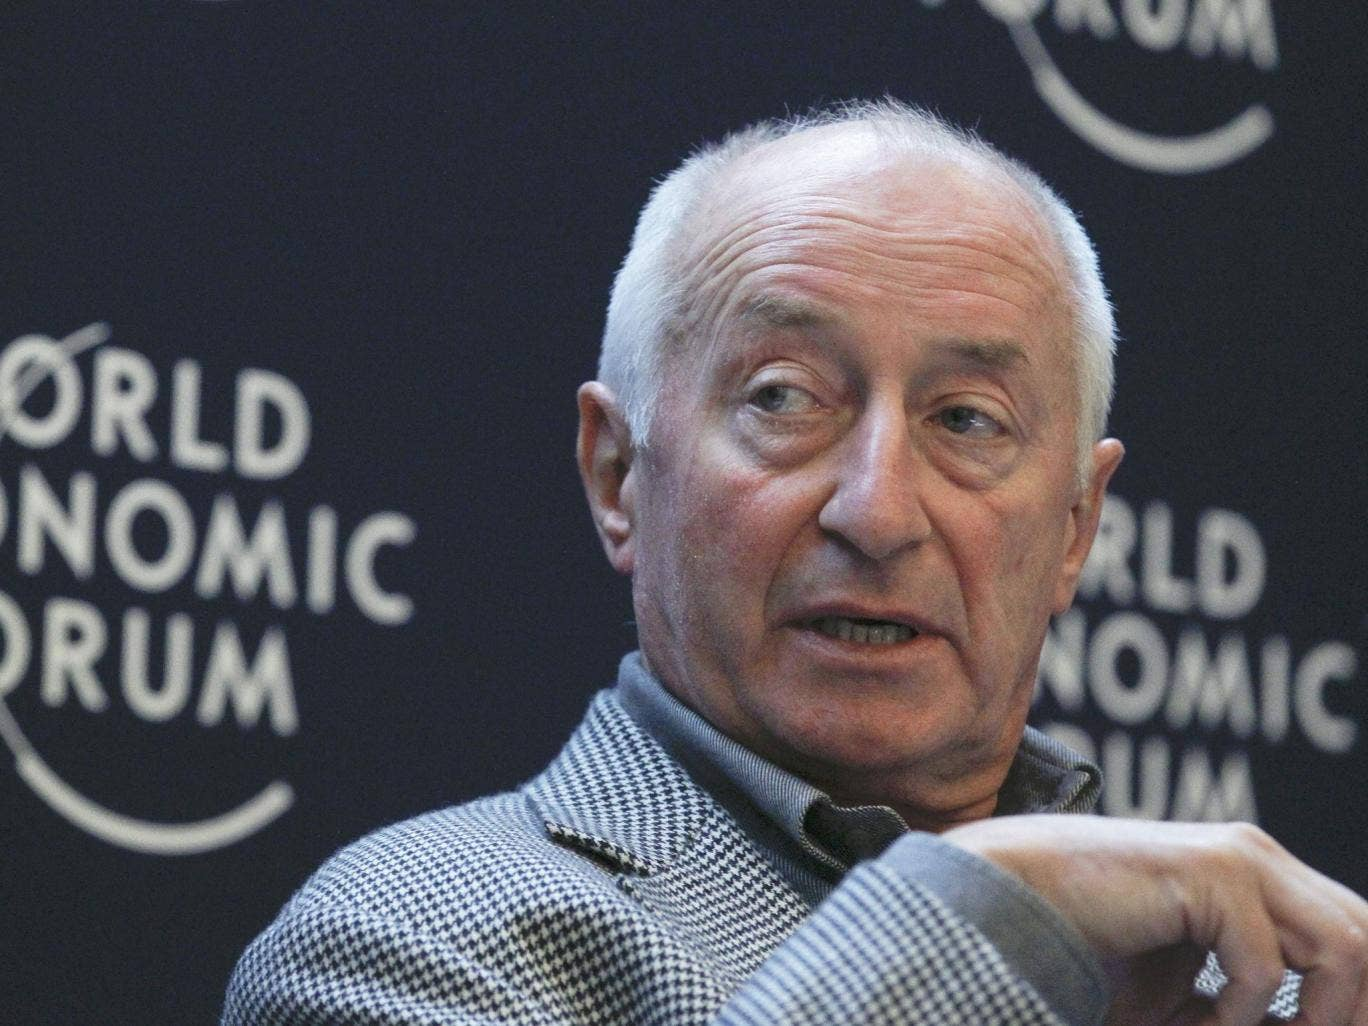 Mackay in Davos in 2012; he was seen as visionary, cerebral and measured